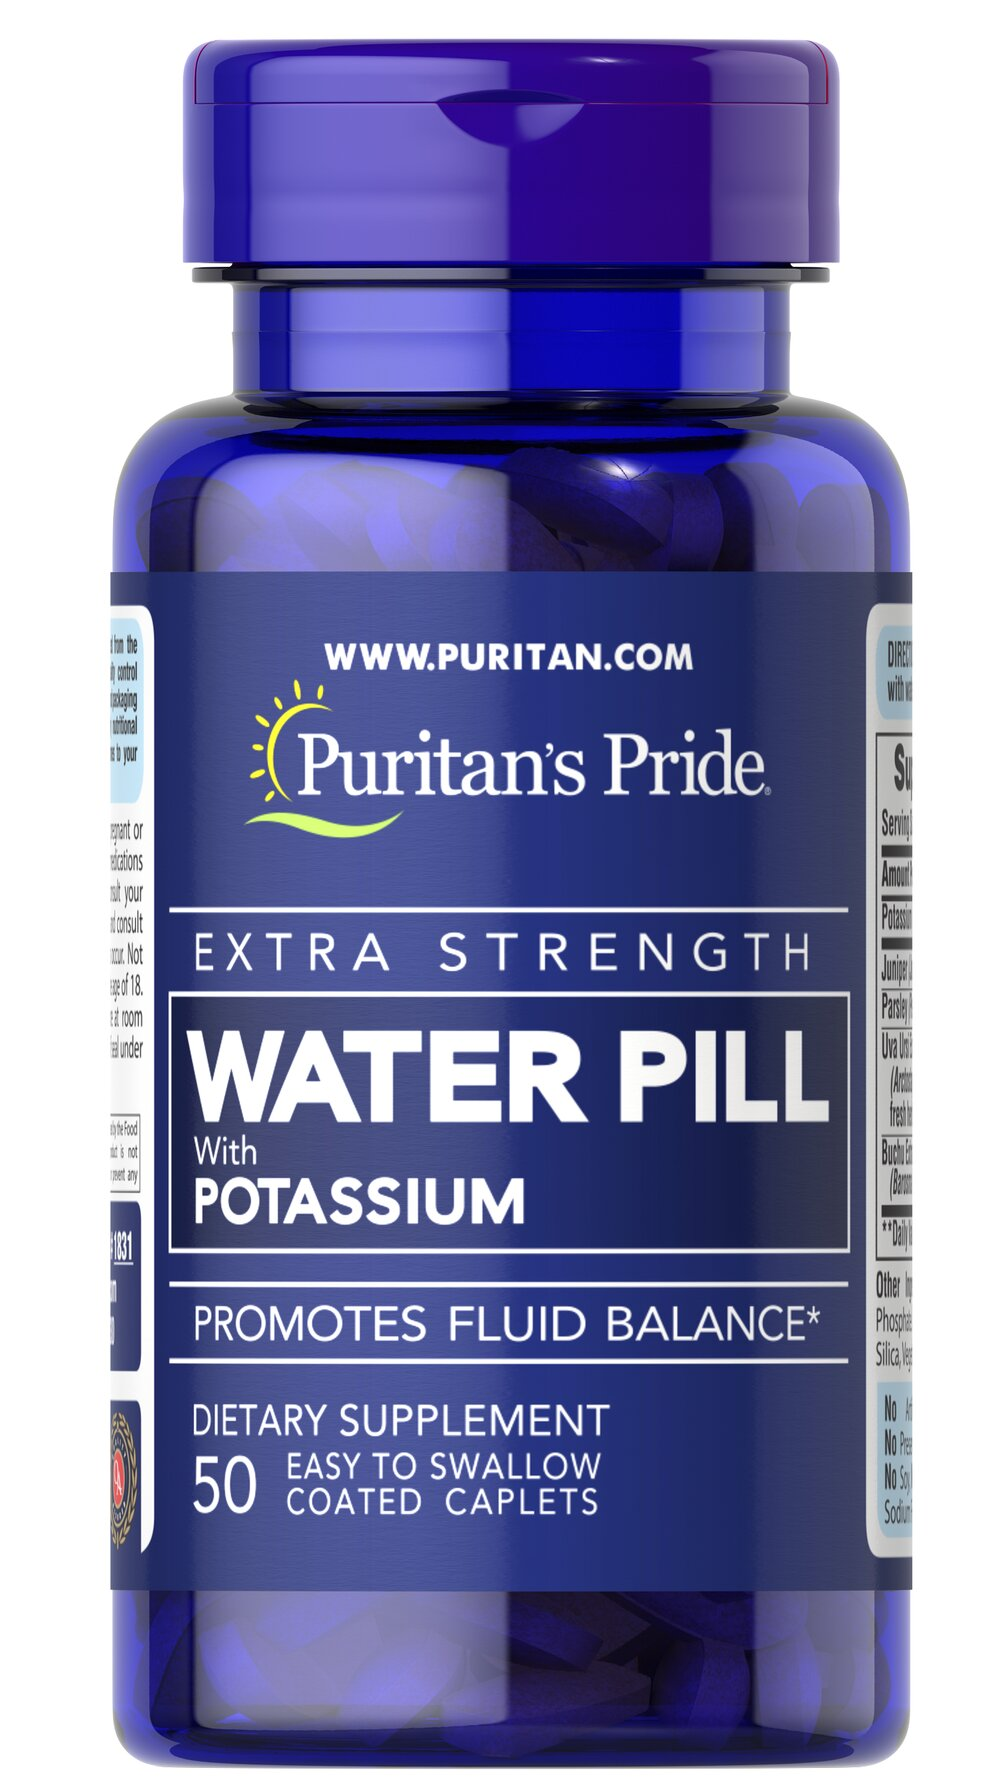 Extra Strength Water Pill™ <p>Promotes Fluid Balance**</p><p>This product contains the essential mineral Potassium, which works with sodium to regulate the body's water balance.** EXTRA STRENGTH WATER PILL™ Tablets also contain Uva Ursi, Buchu, Juniper and Parsley.</p> 50 Caplets  $7.49